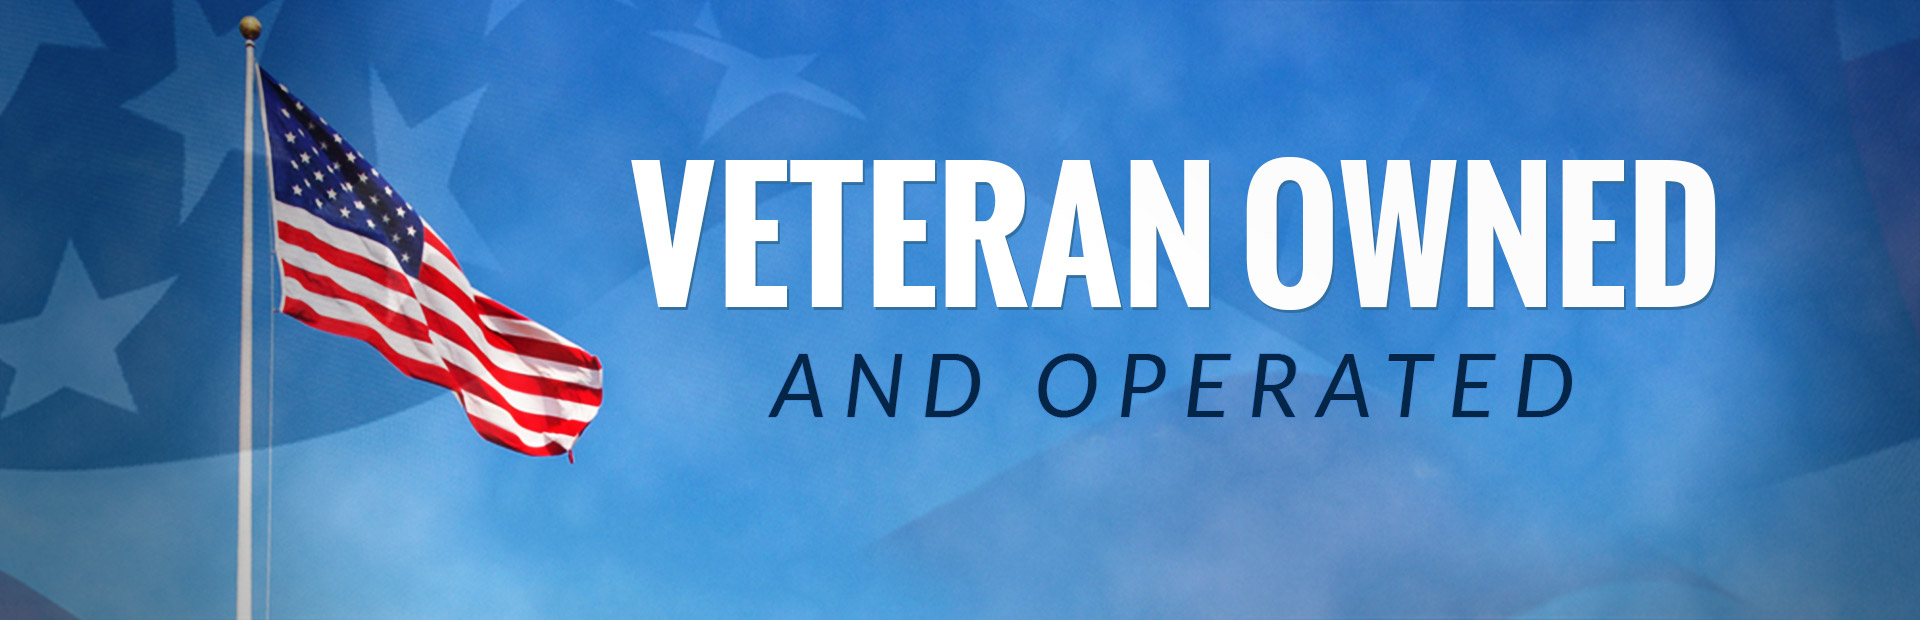 We are veteran owned and operated!